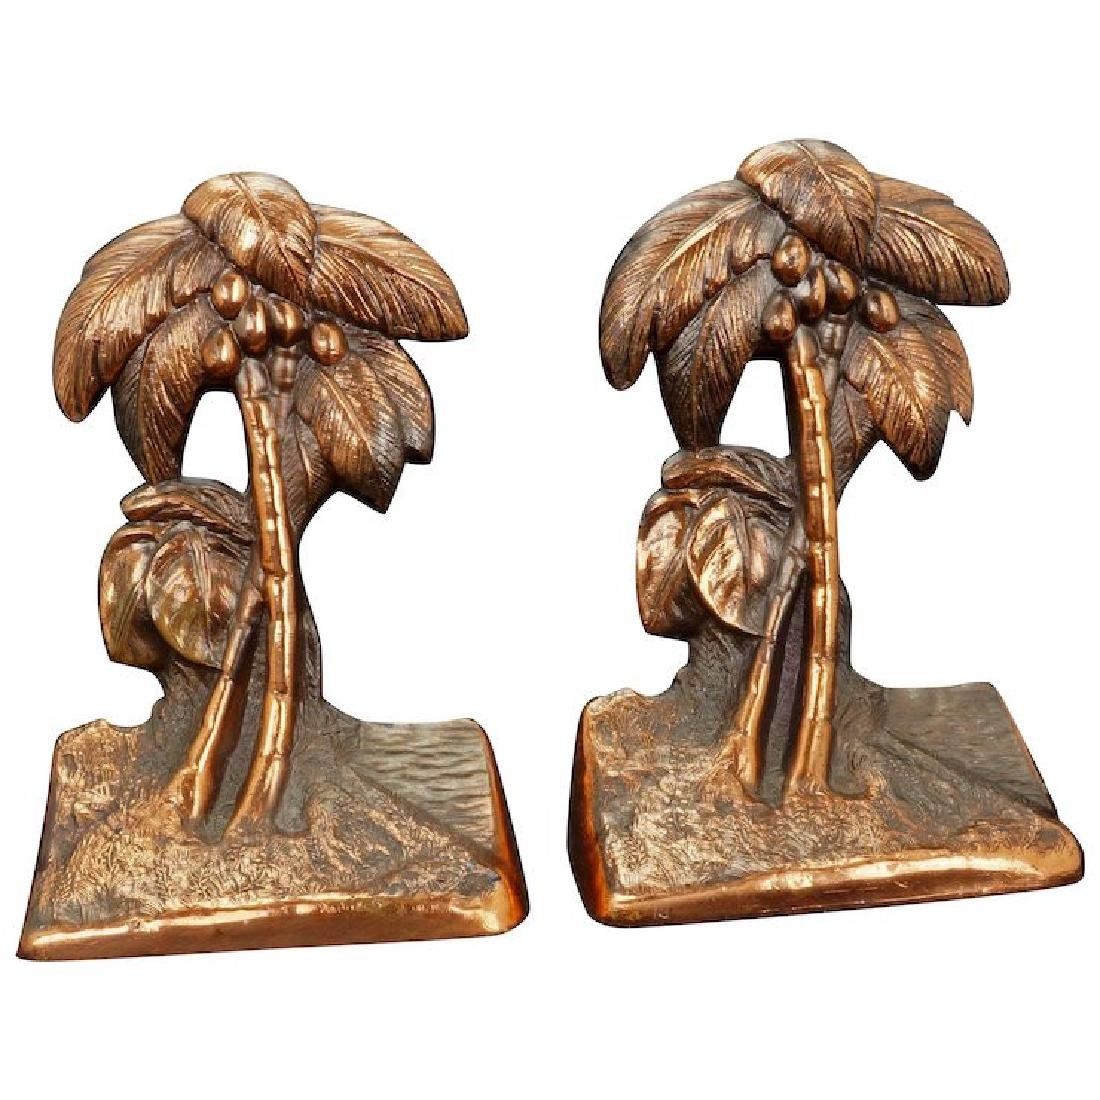 Pair of copper clad metal palm tree bookends circa 1930